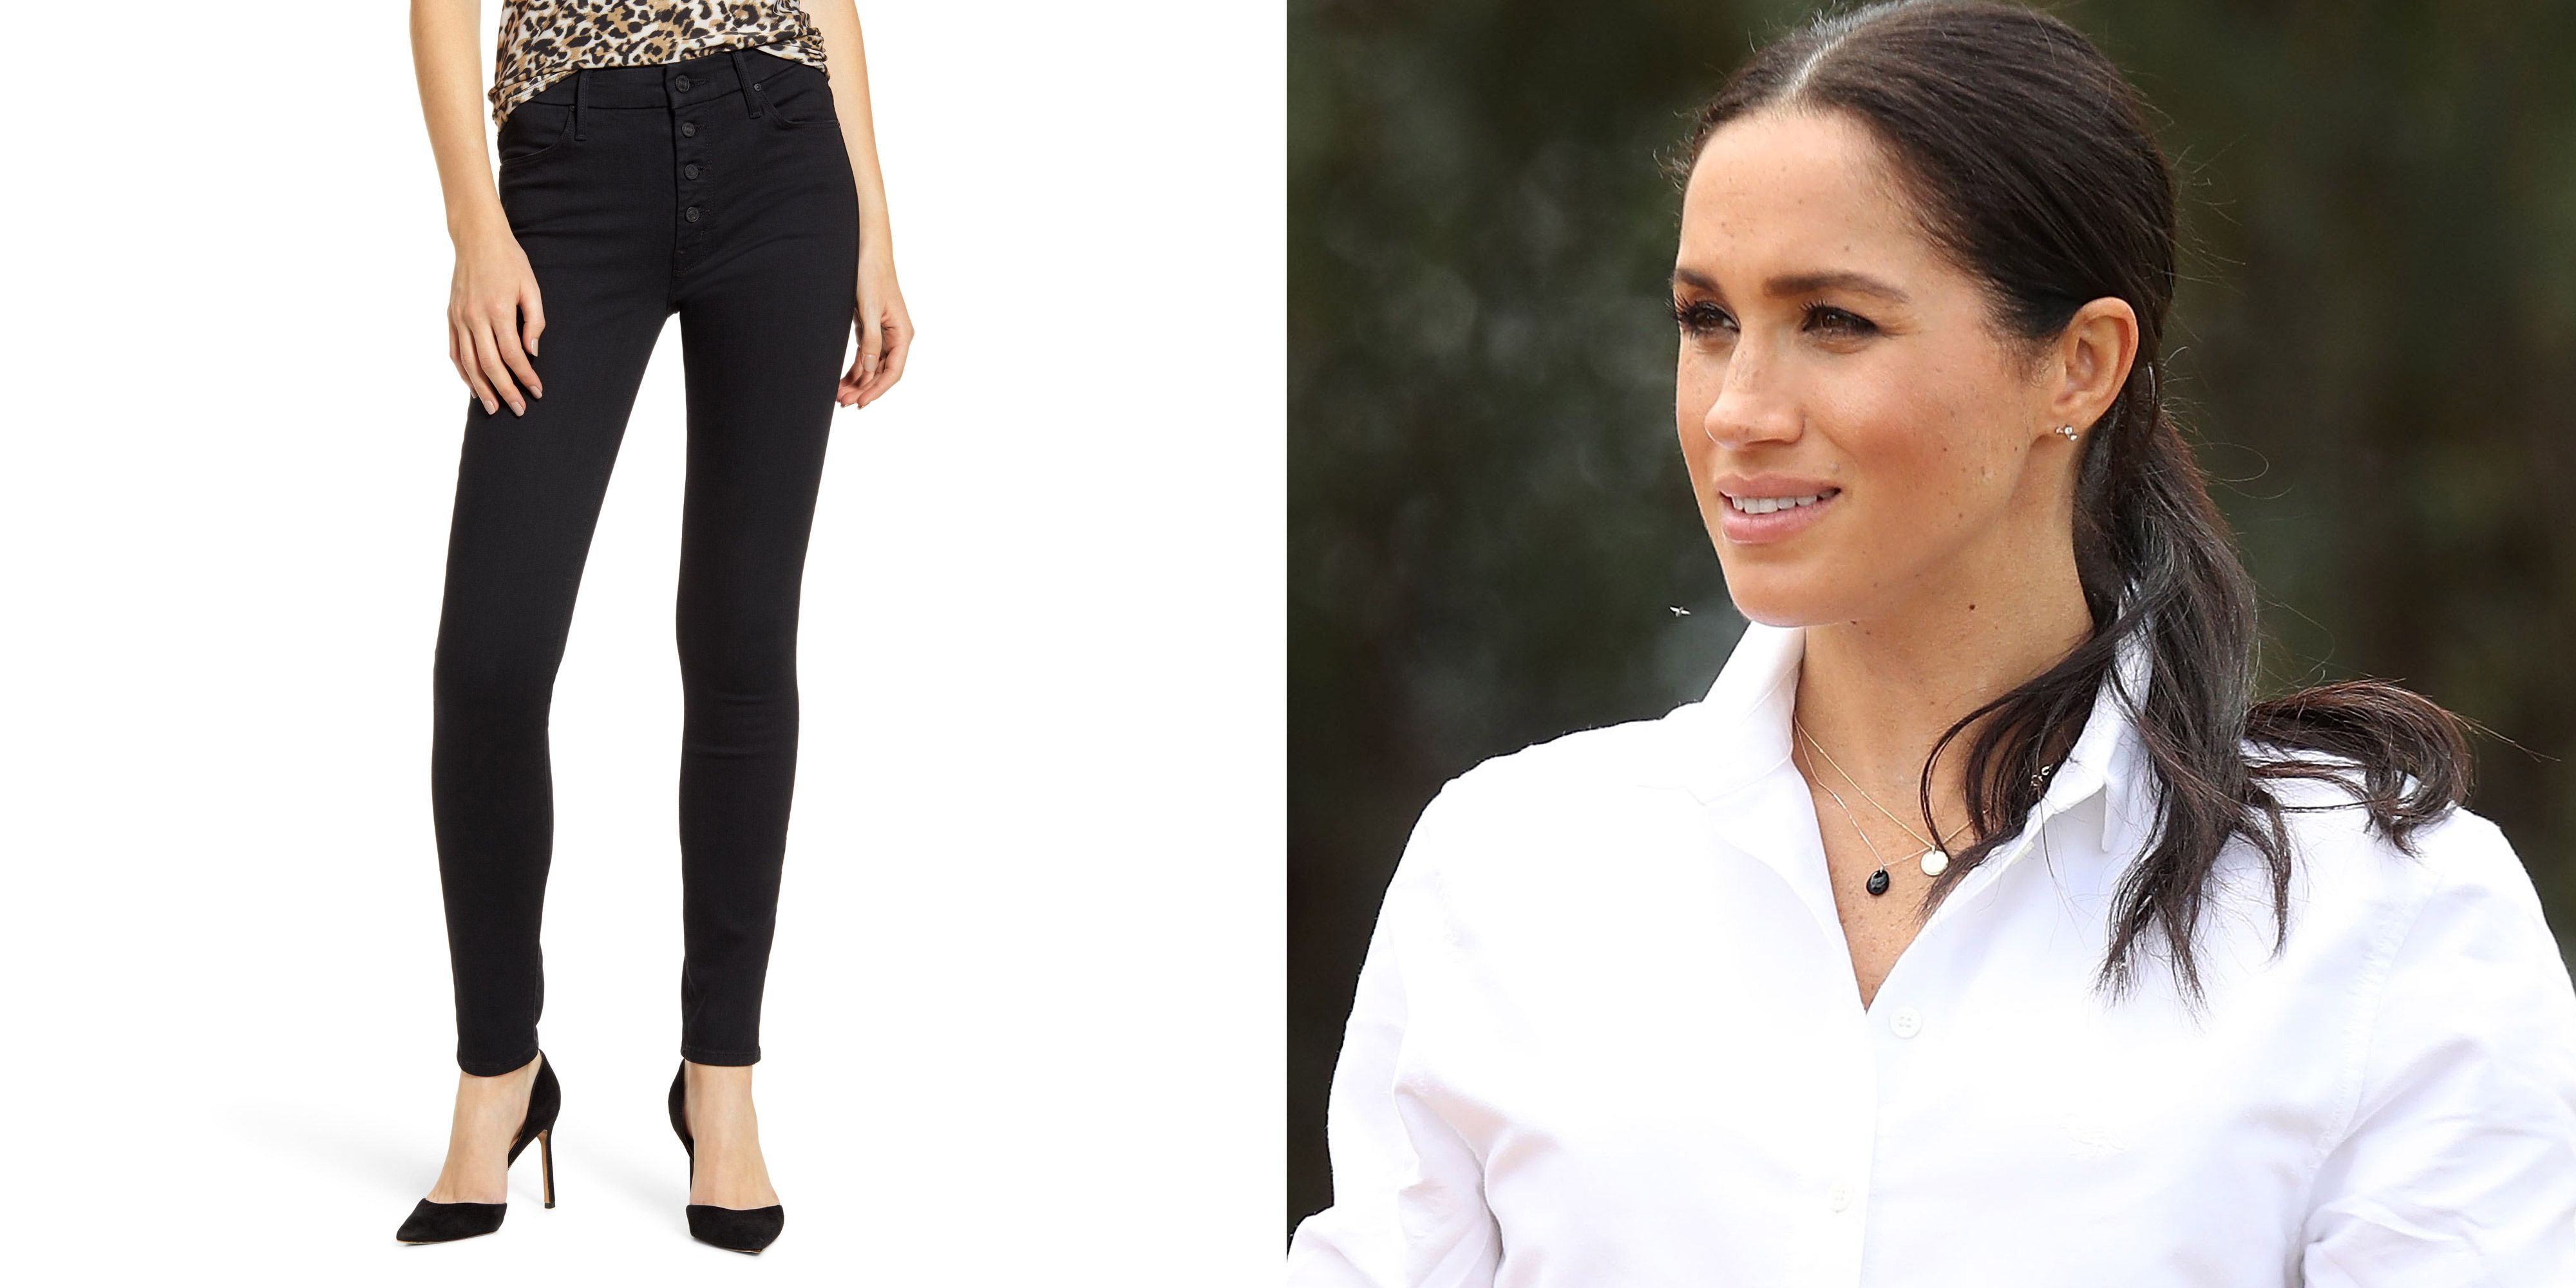 Meghan Markle's Favorite Mother Jeans Are 30 Percent Off at Nordstrom's Anniversary Sale